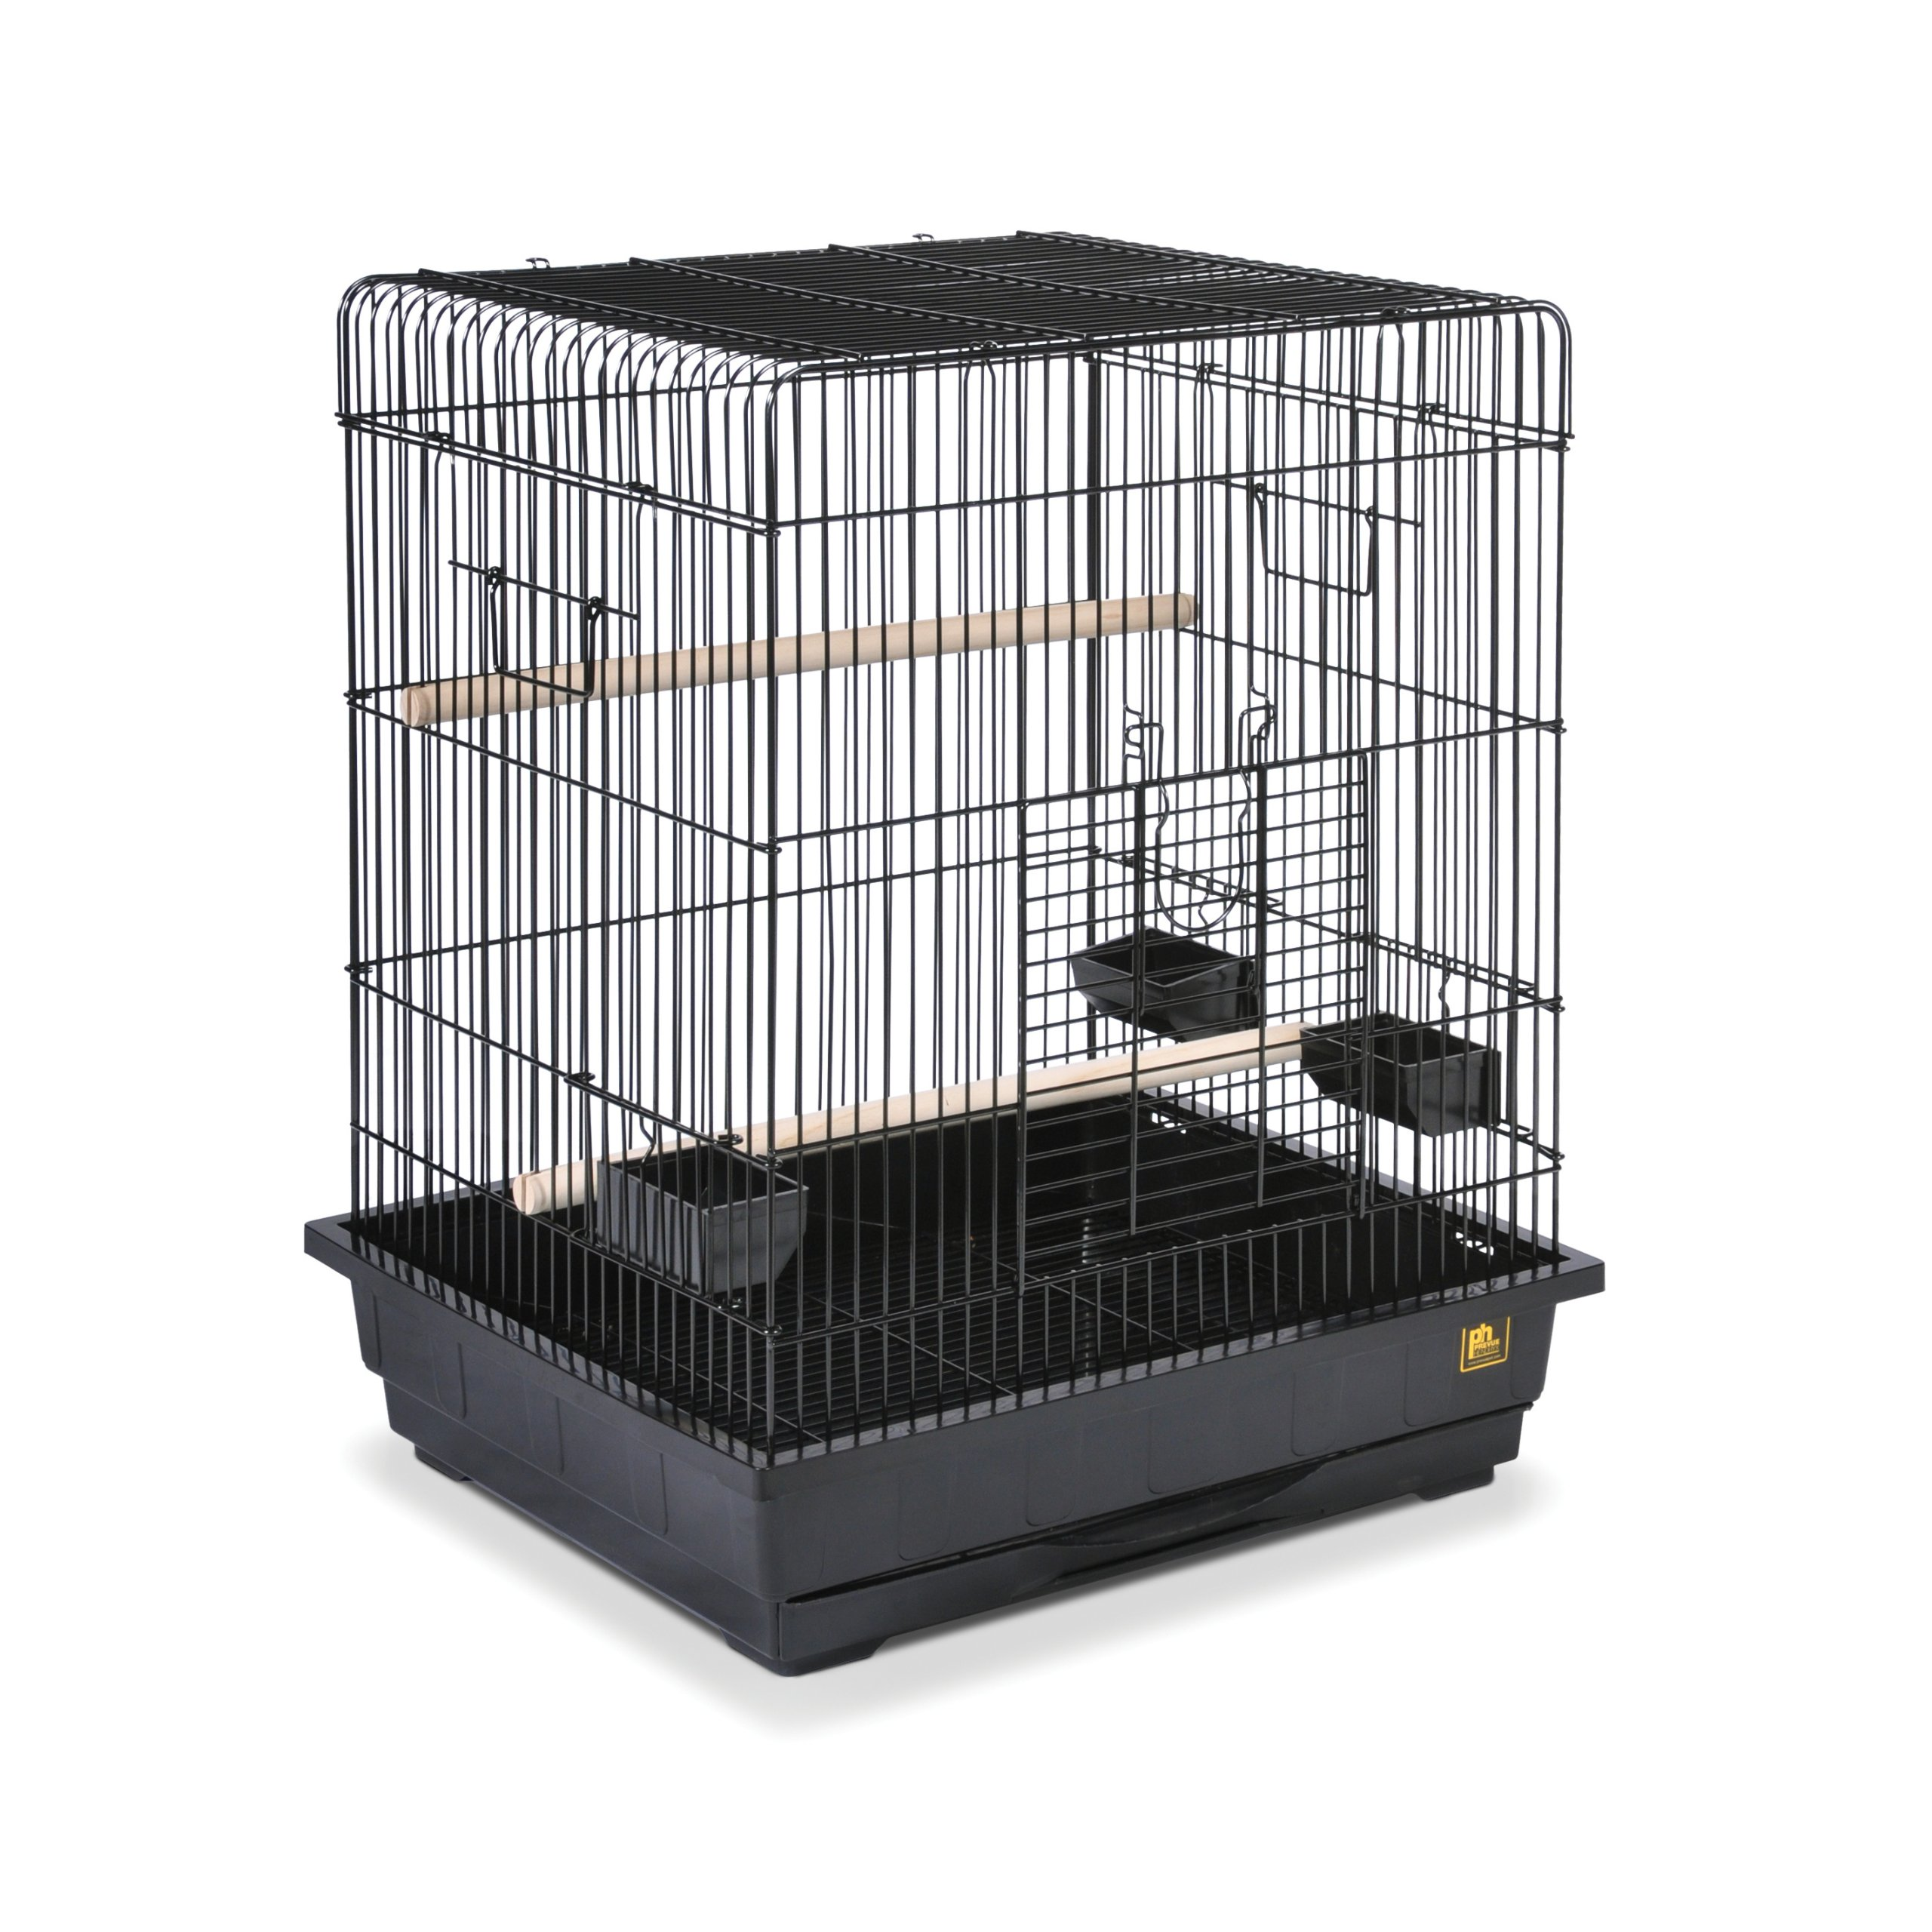 Prevue Pet Products Square Roof Parrot Cage, Black by Prevue Hendryx